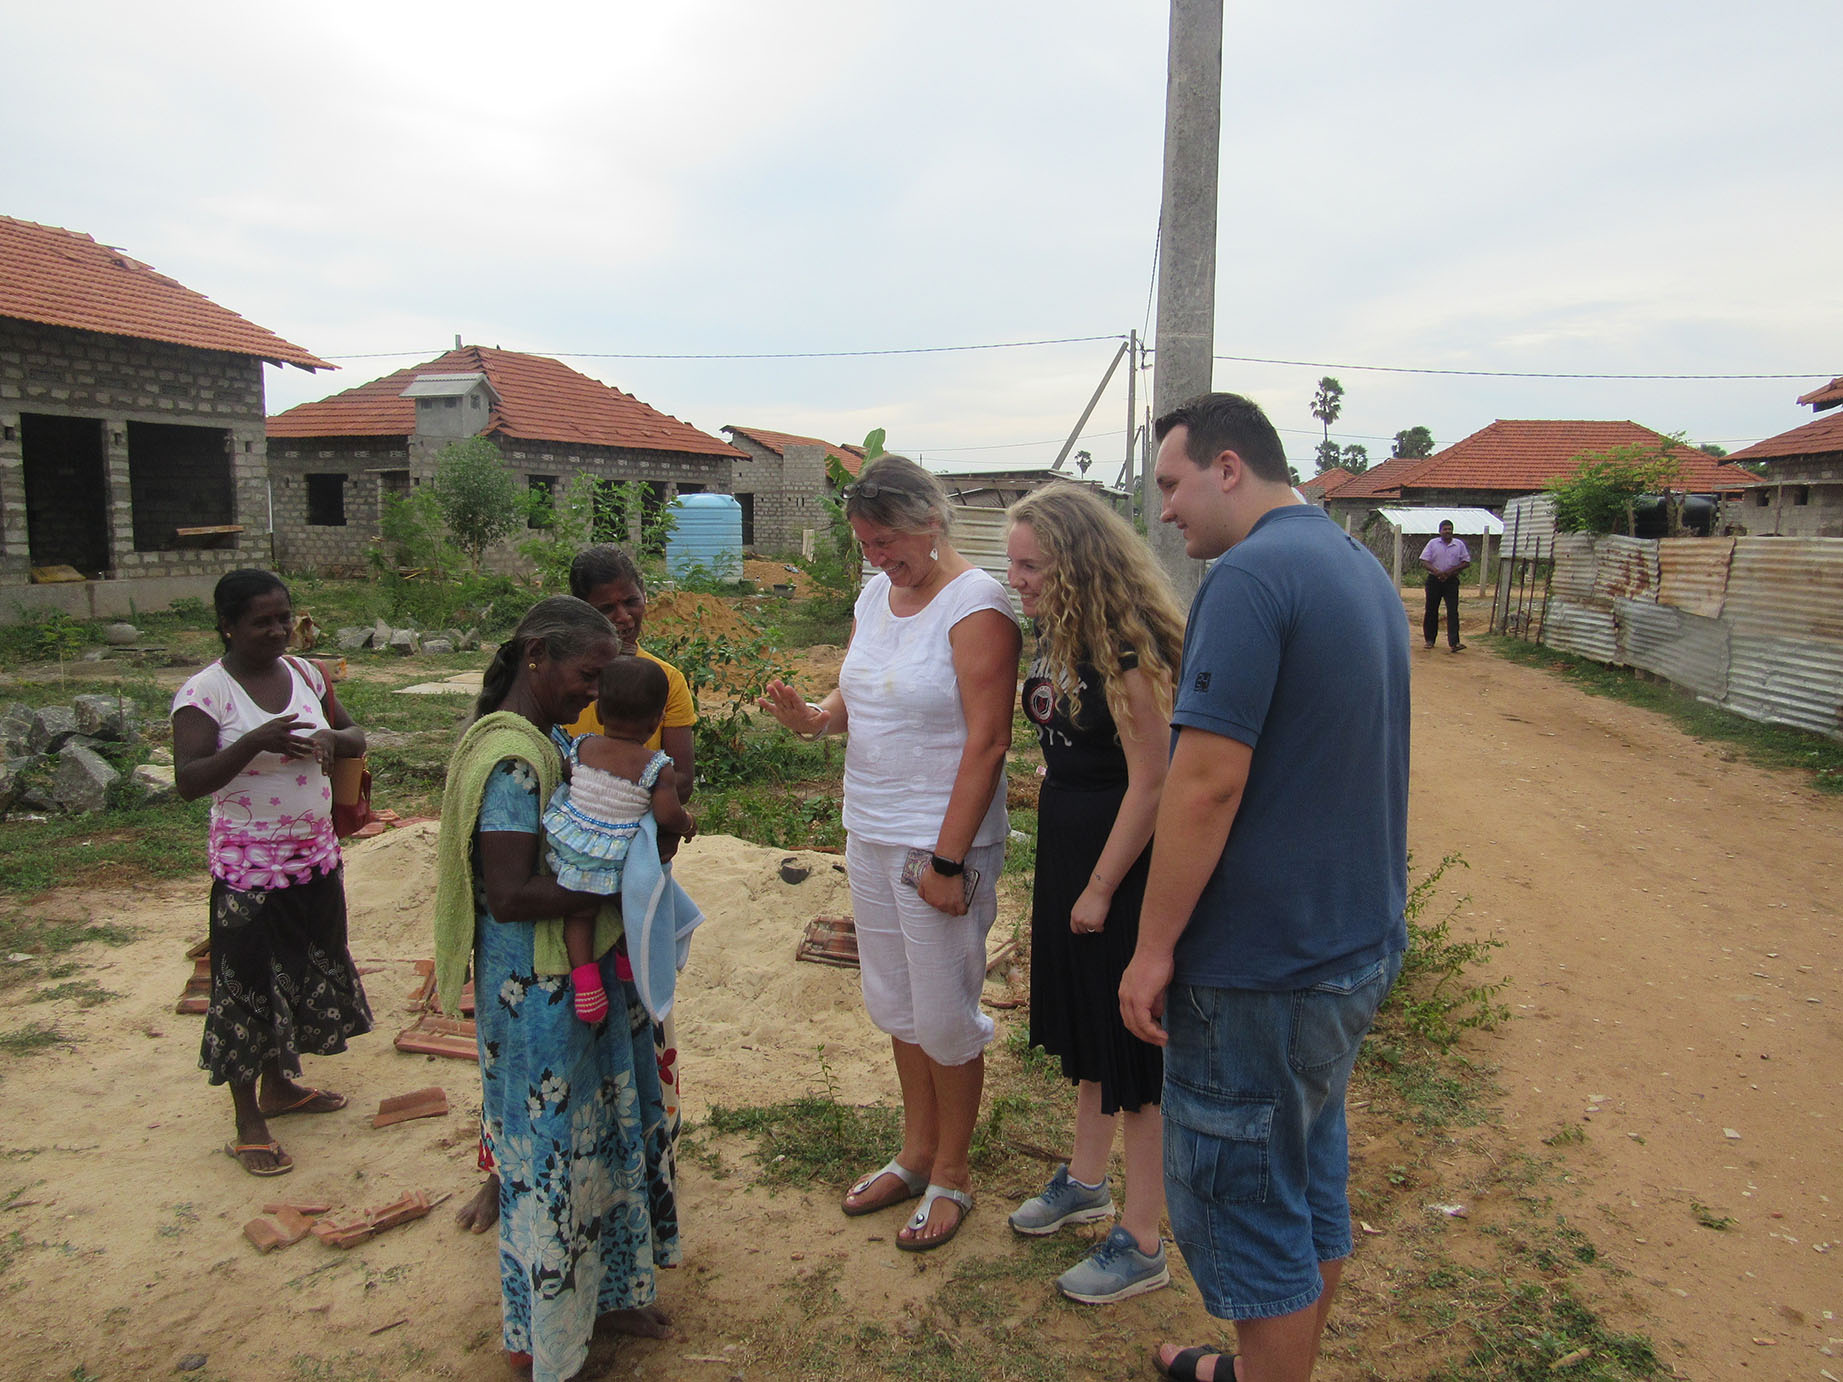 Brotherhood shared between VGS team, Norway and returnees in Jaffna